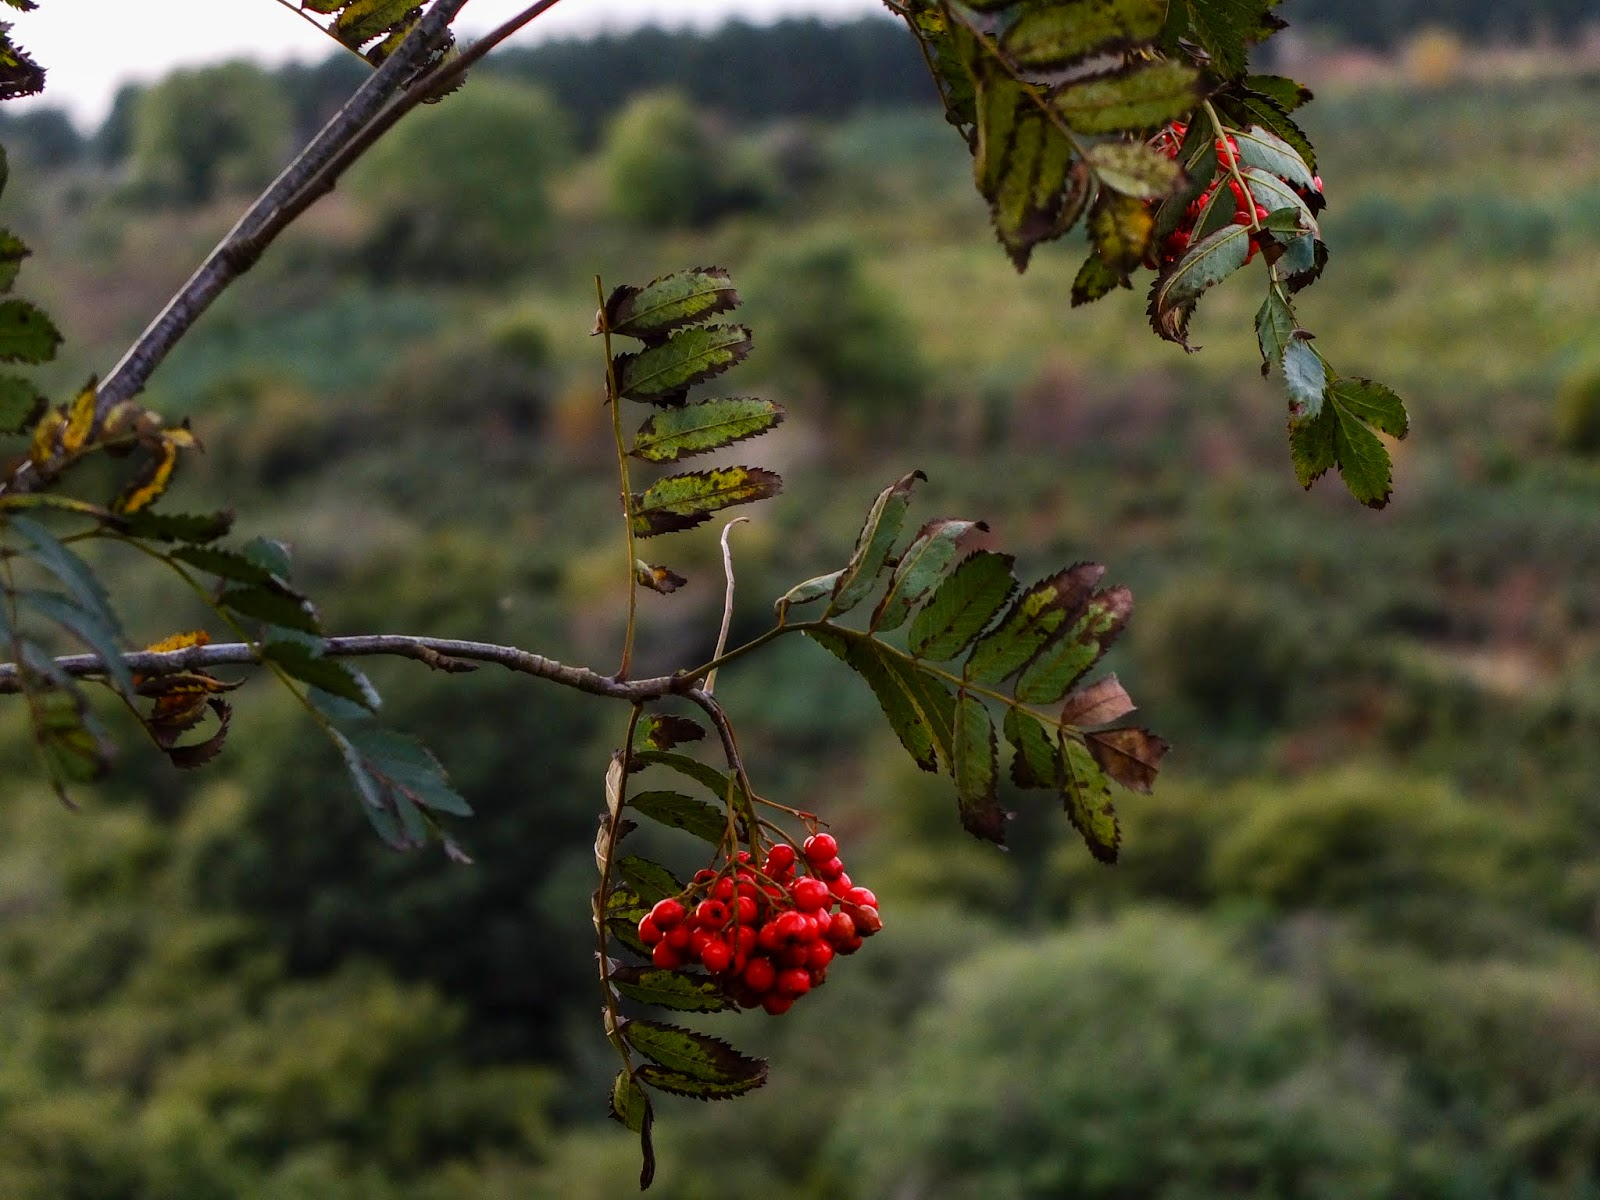 Red Mountain Ash tree berries hanging off a branch with browning leaves.